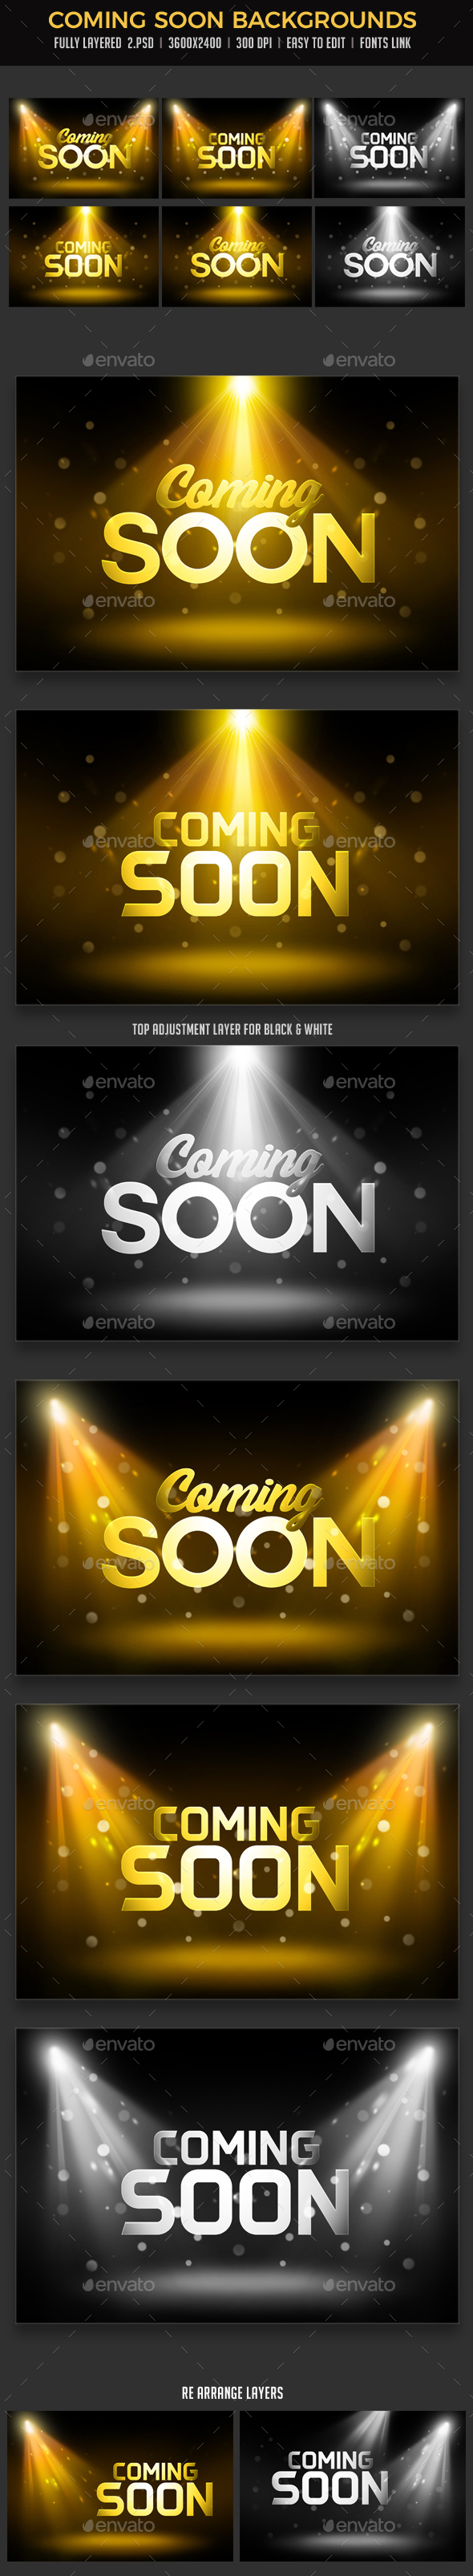 Coming Soon Backgrounds - Miscellaneous Backgrounds